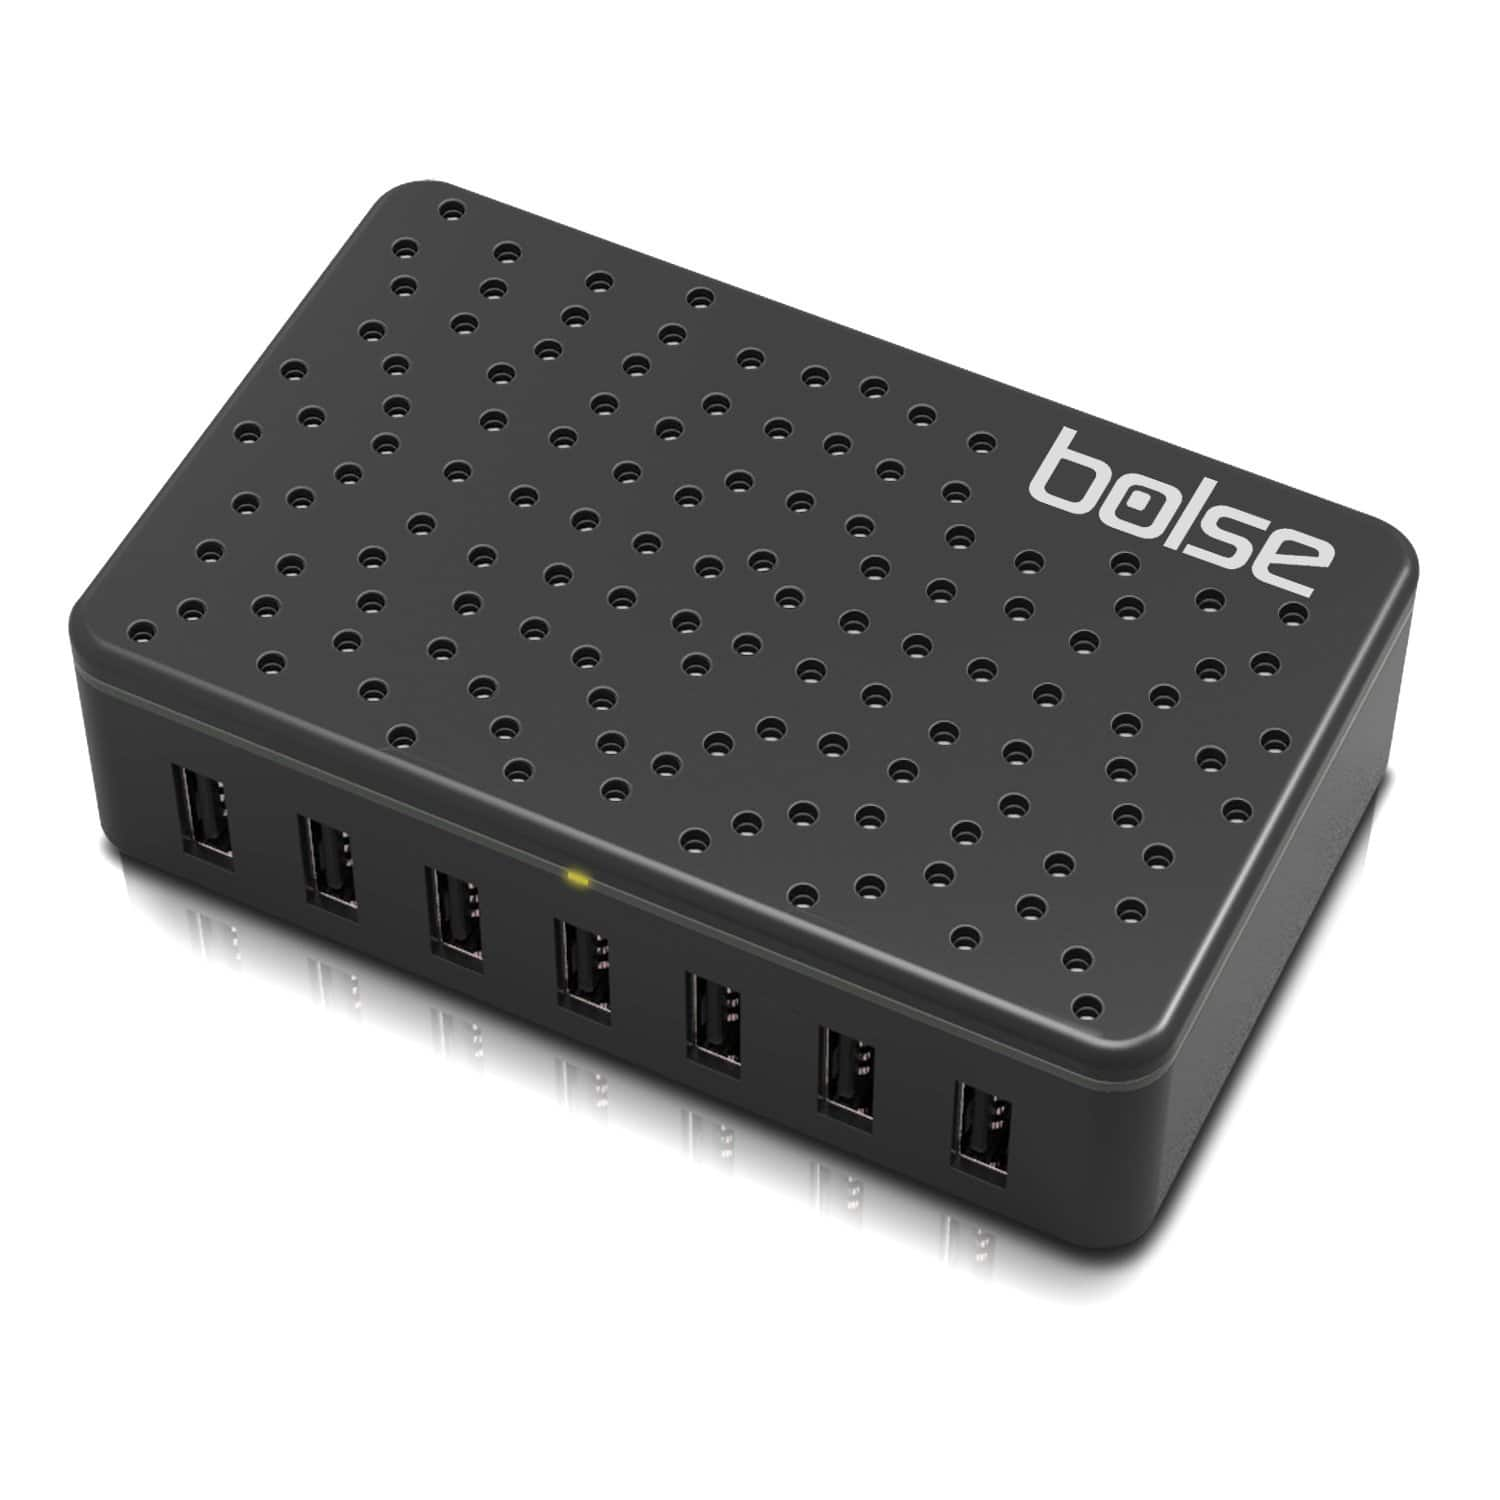 Bolse Black 5V/12A (60 Watts) 7-Port USB Wall/Desktop Charger with SmartIC Technology & Detachable 5 Ft. Power Cord (LC128) - $32.99 AC + Free Shipping @ Amazon.com